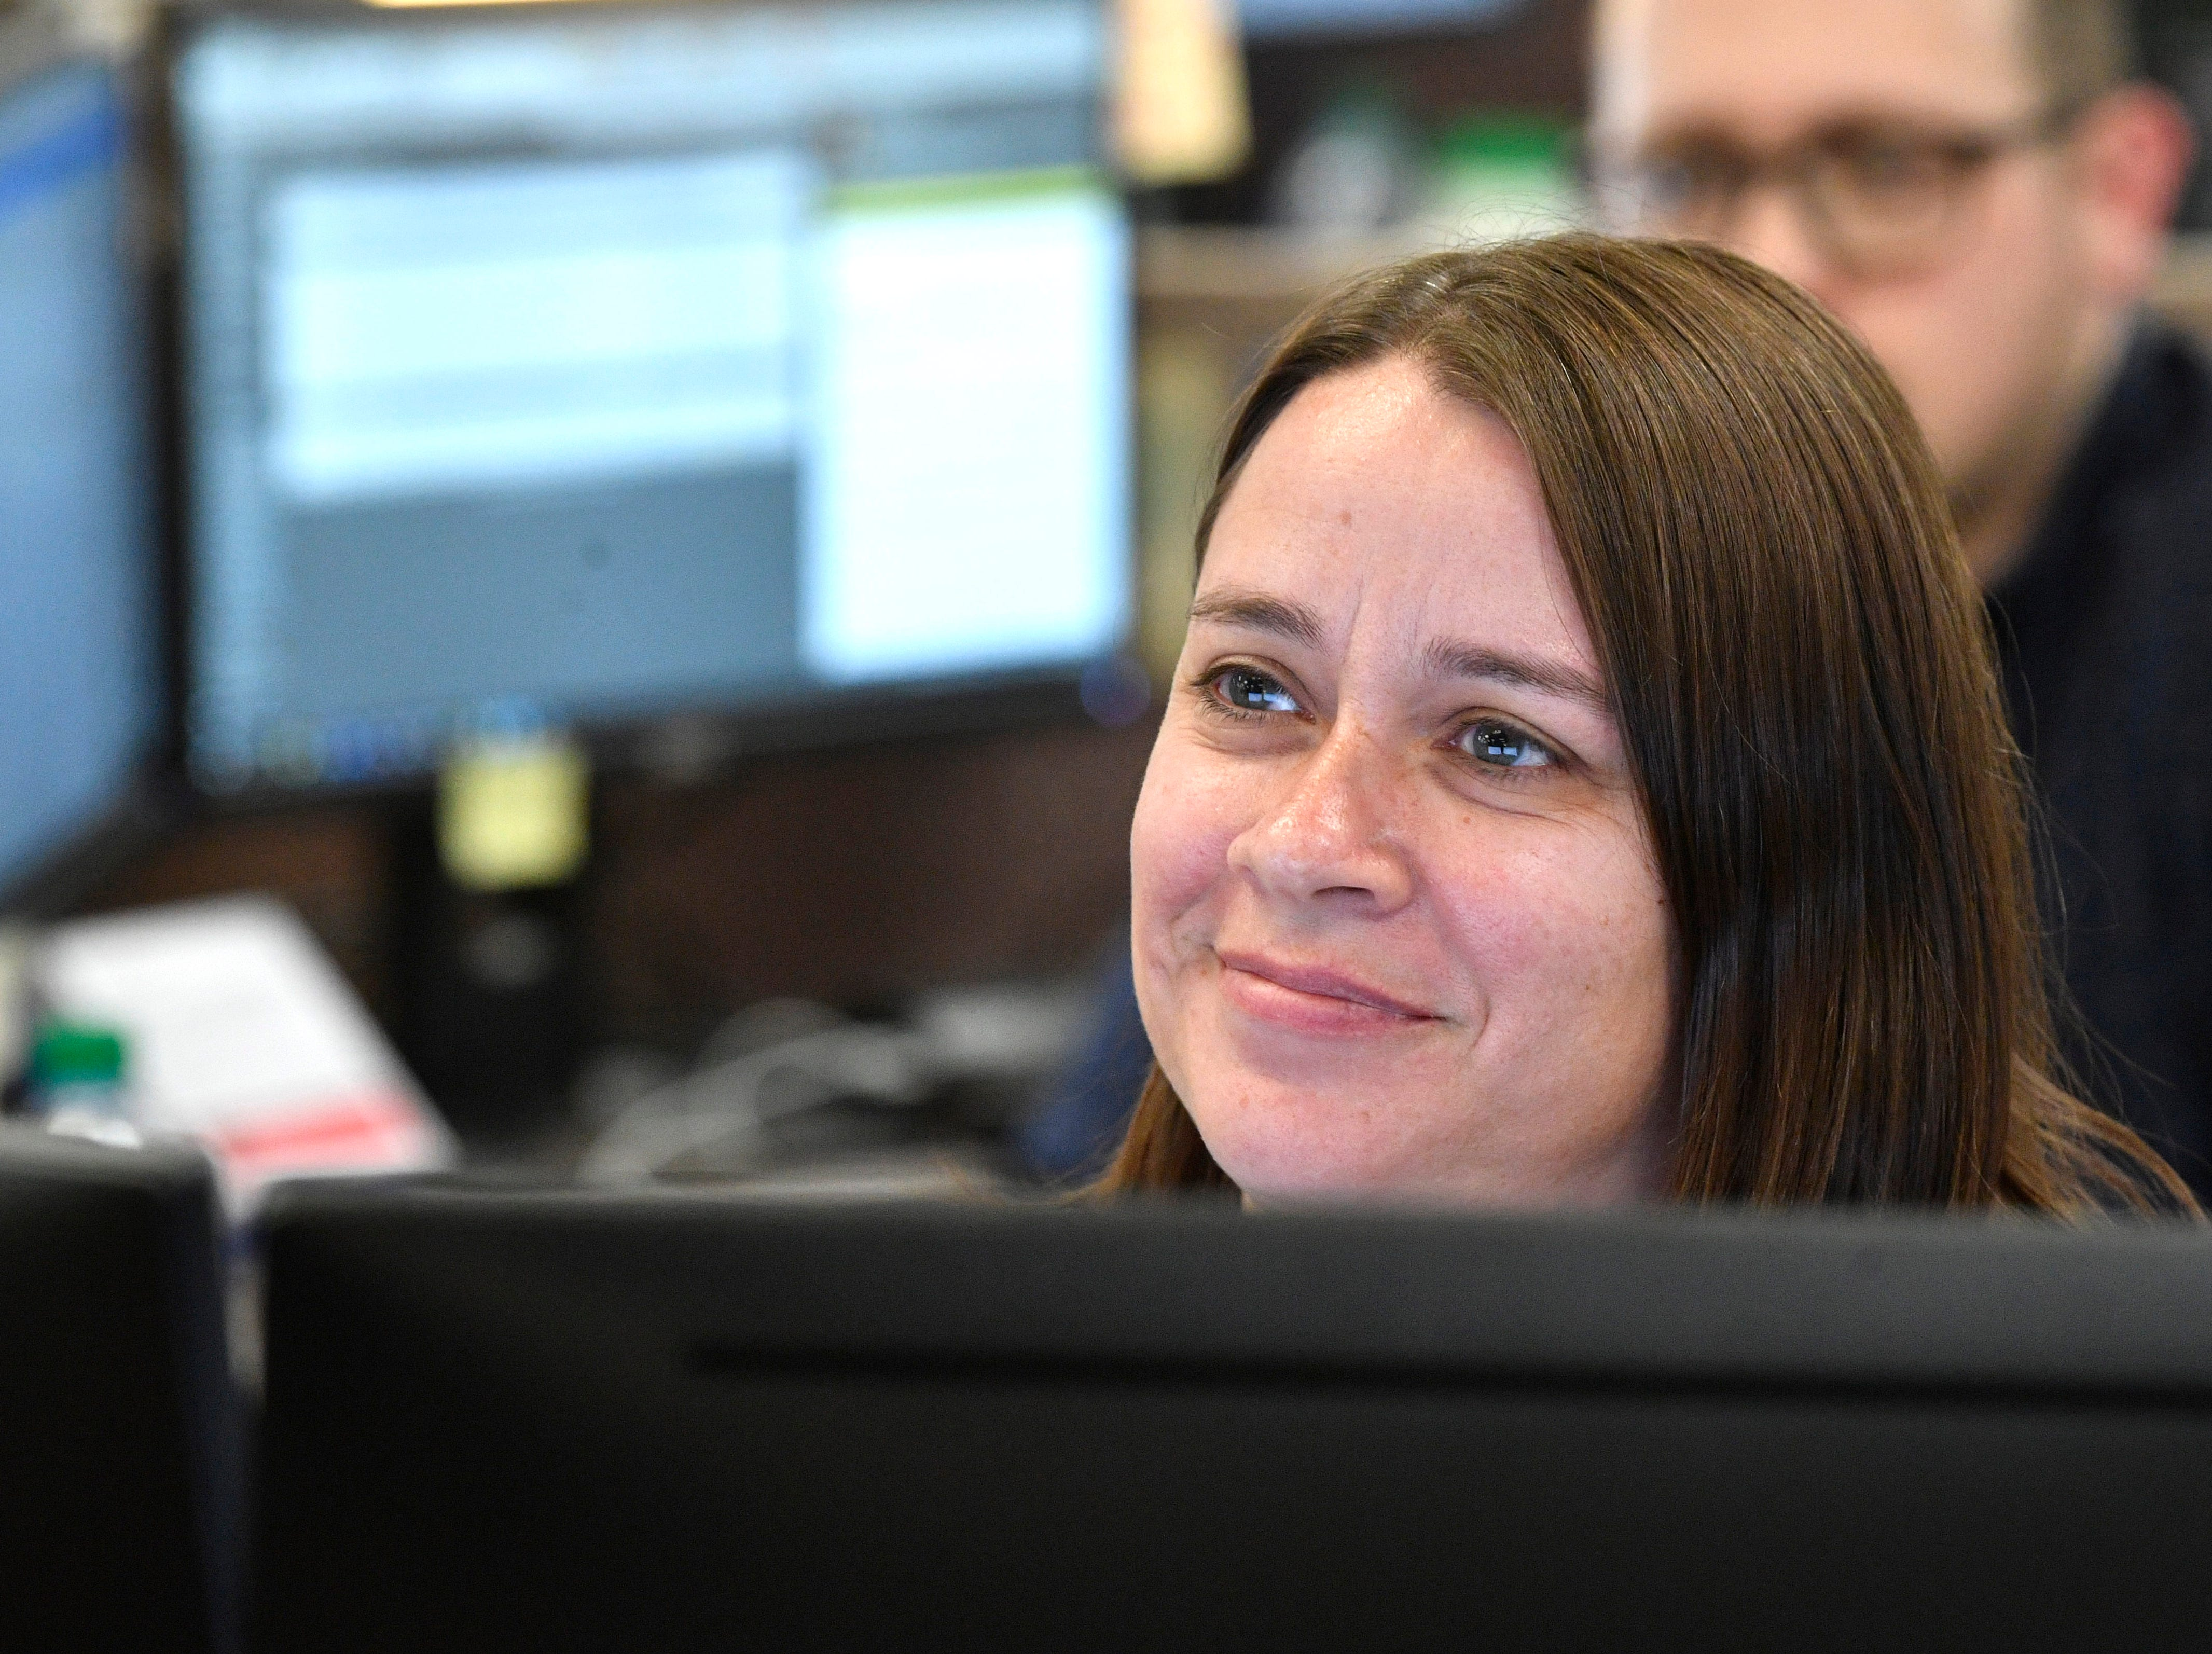 Karen Grigsby is a producer in The Tennessean newsroom Wednesday, Jan. 2, 2019.